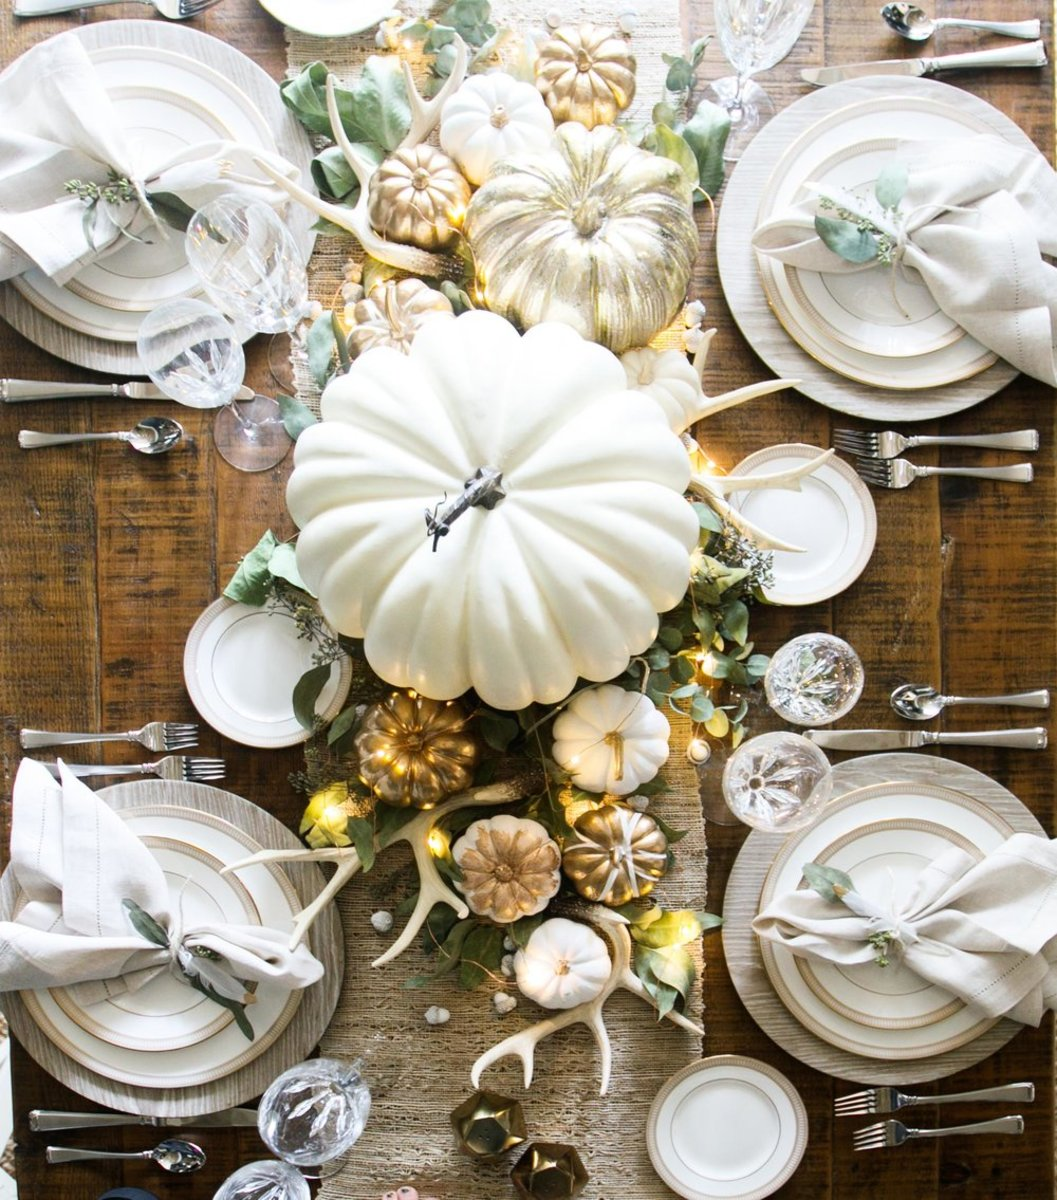 Chic Thanksgiving Table from Living with Landyn